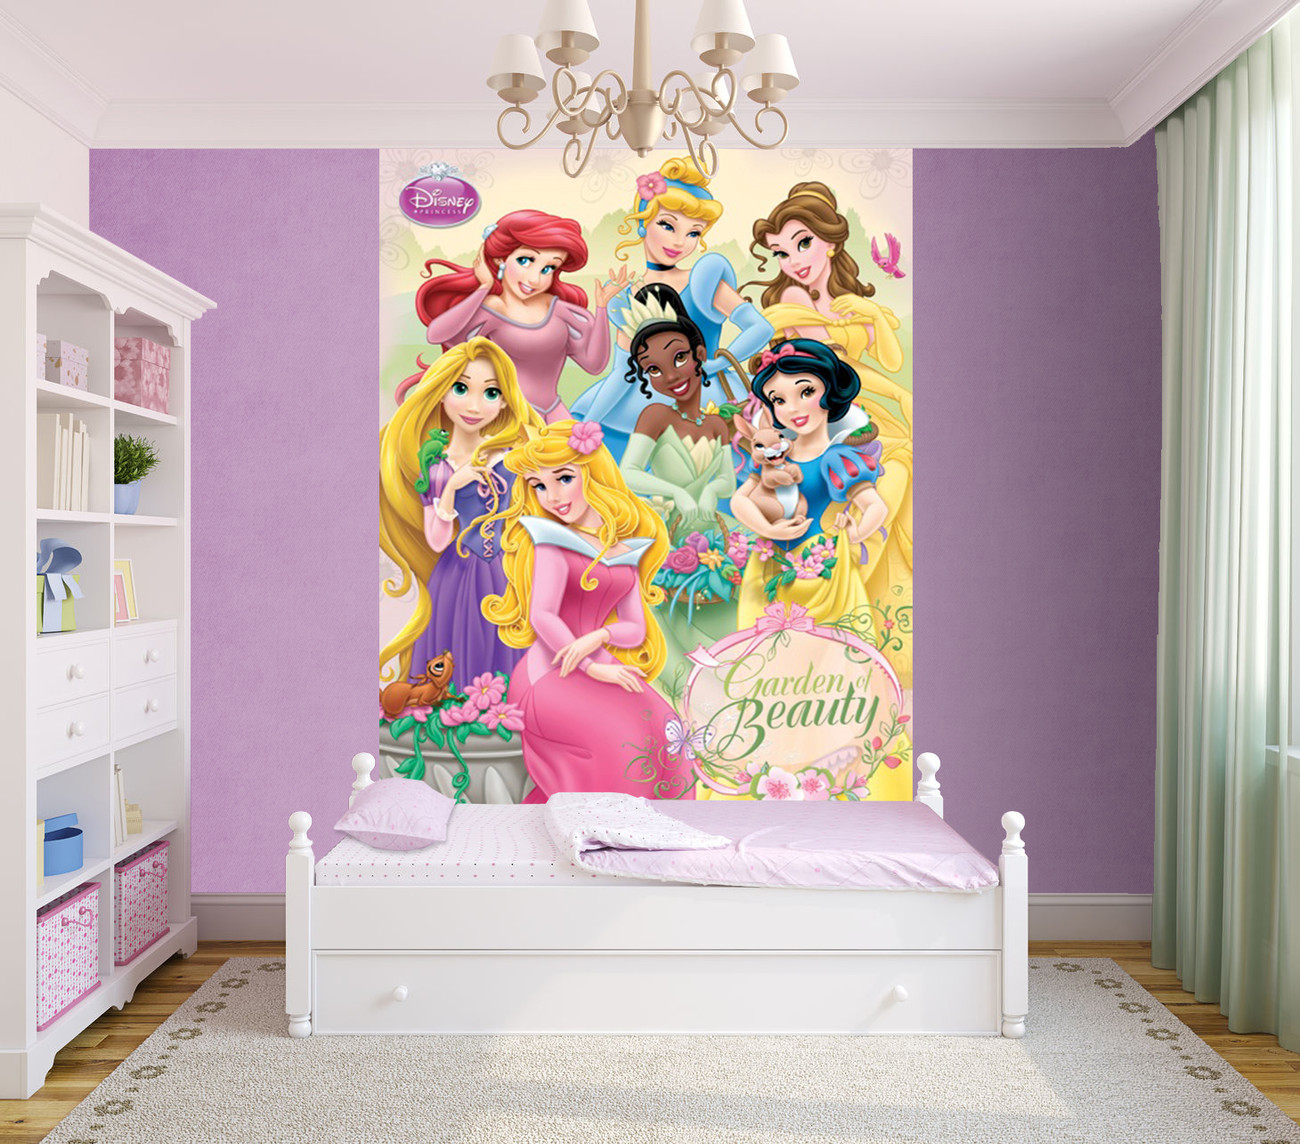 Disney princess wall mural buy at europosters for Disney princess wall mural